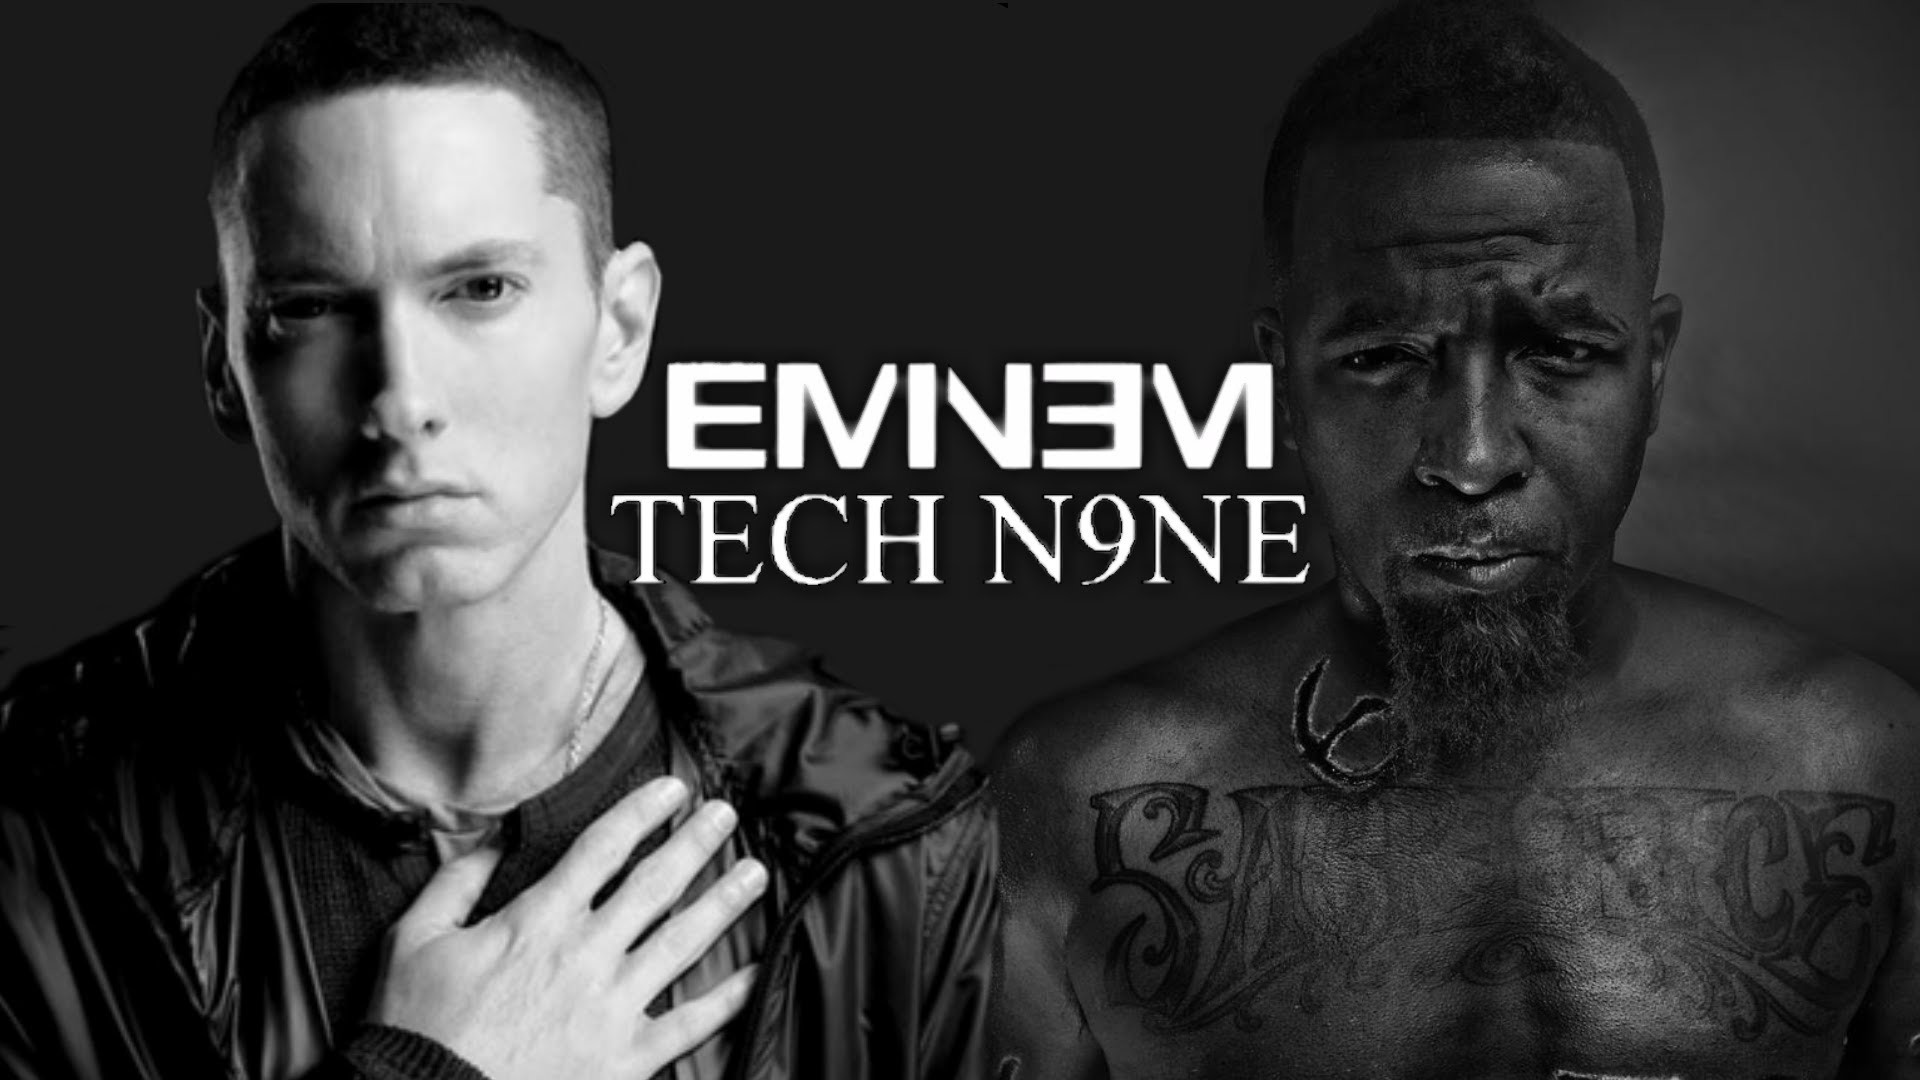 1920x1080 Eminem & Tech N9ne - The History Of A Collaboration [Collaboration -  Report] - YouTube